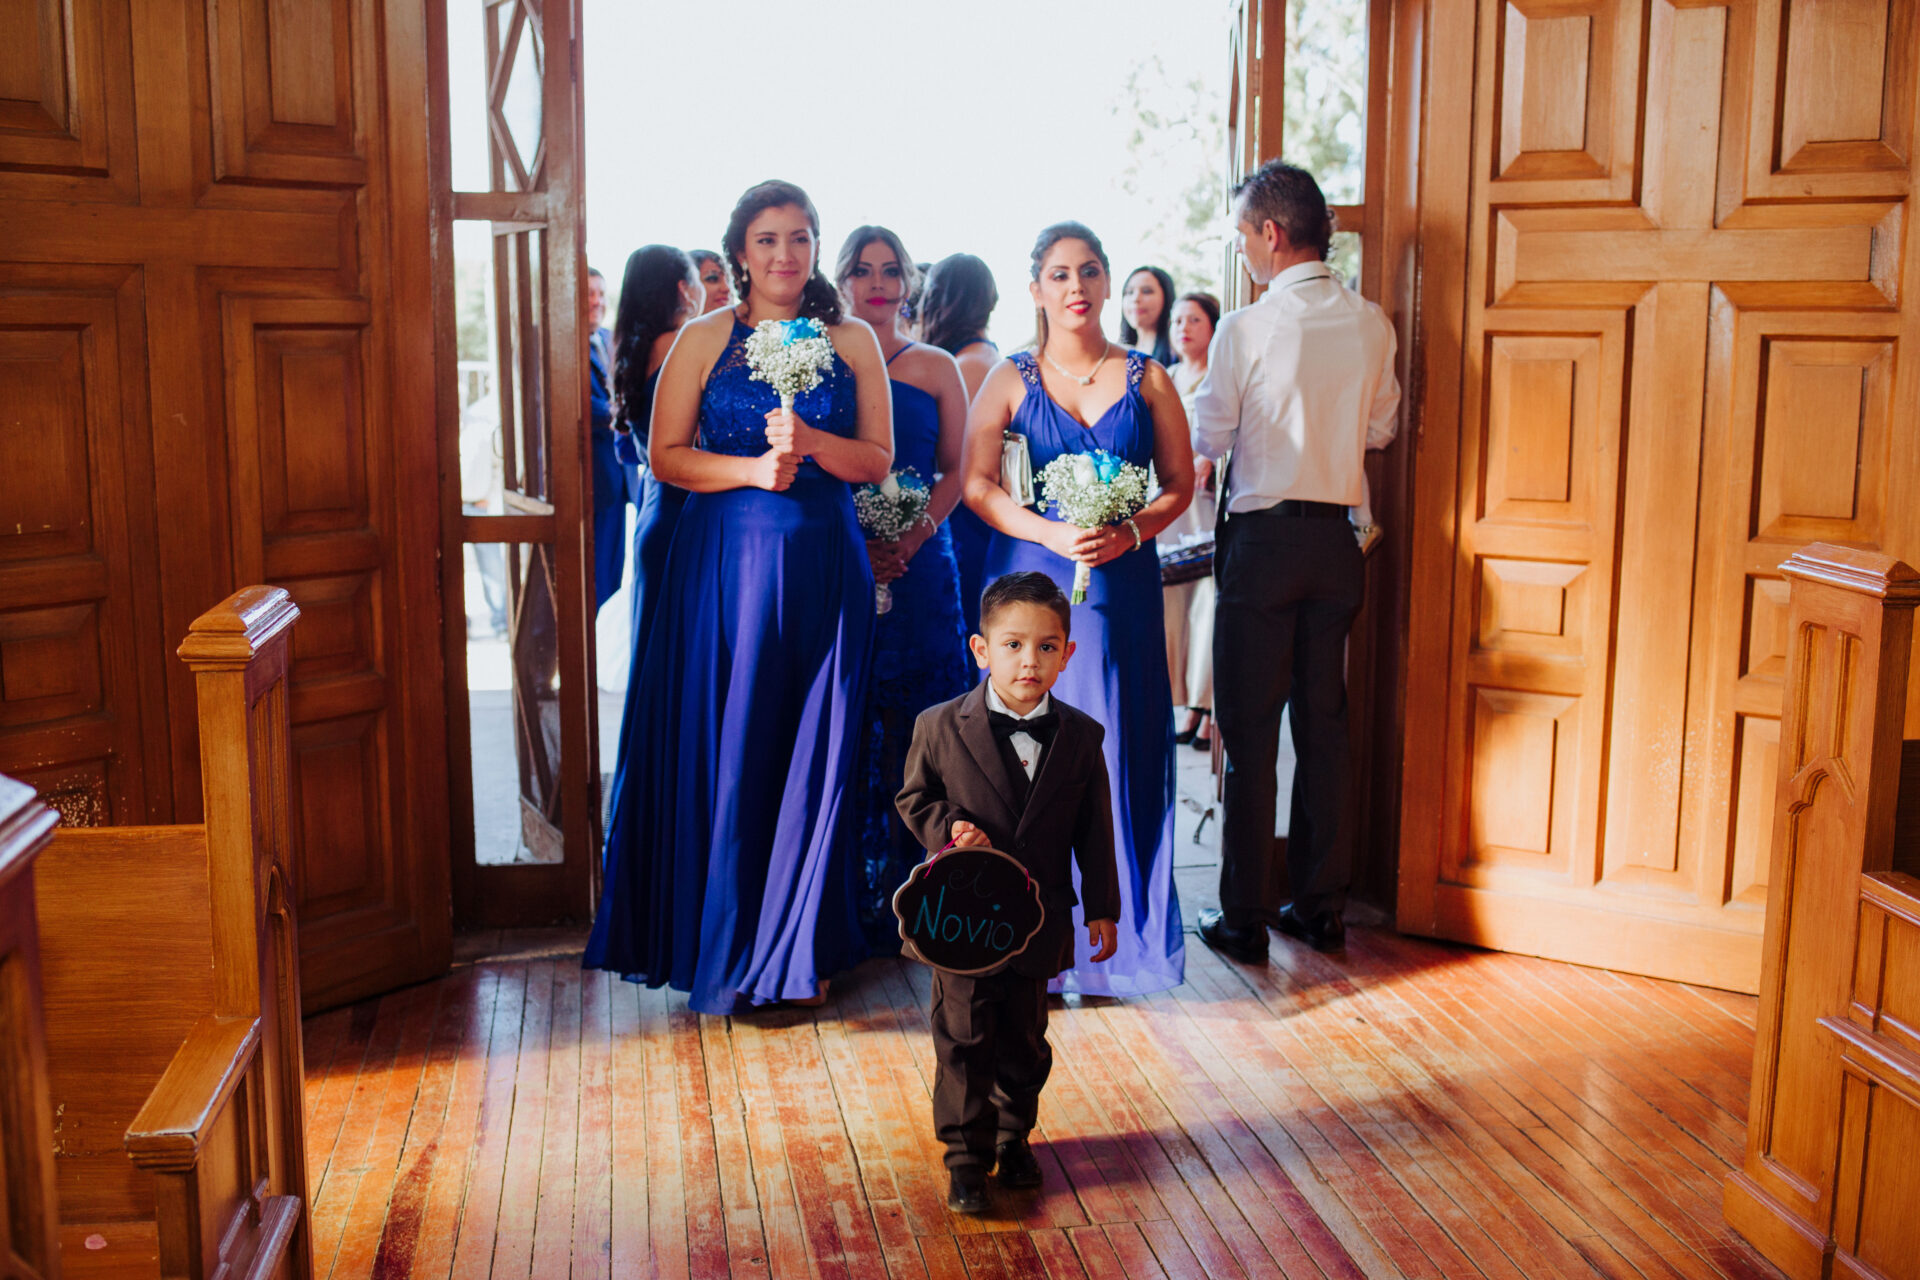 javier_noriega_fotografo_bodas_zacatecas_chihuahua_wedding_photographer16